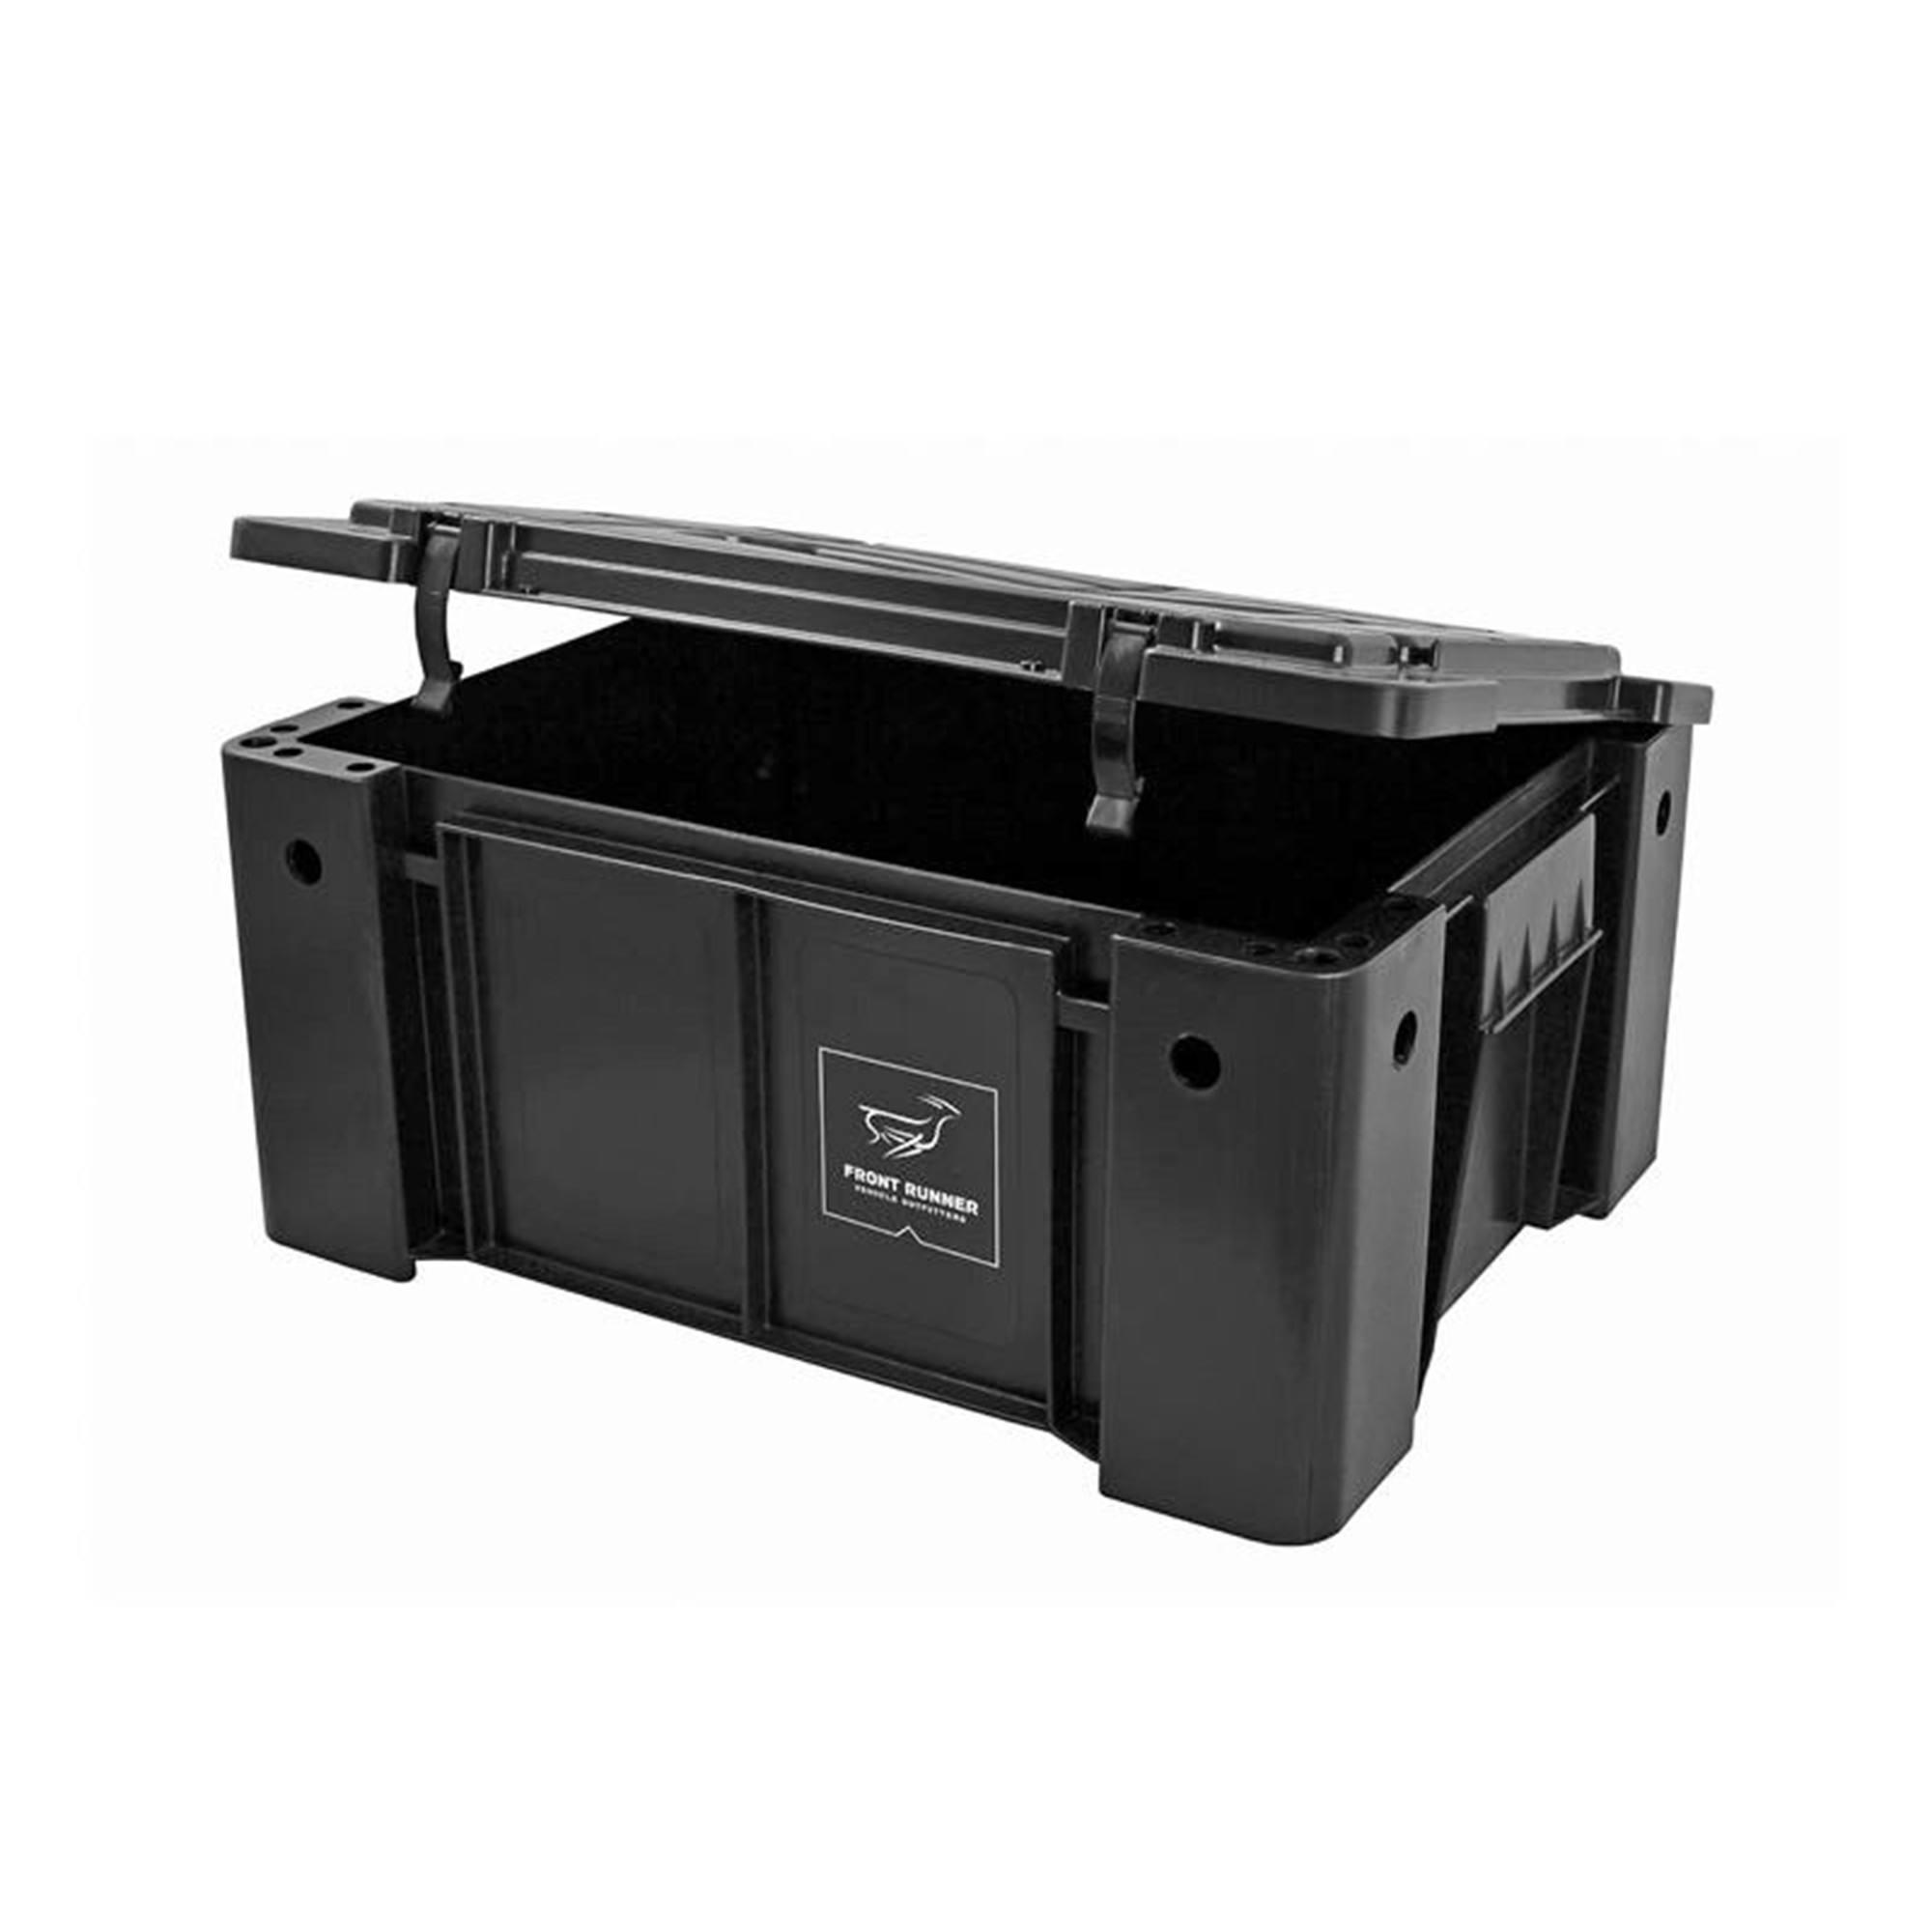 "Front Runner Wolf Box Pack - Low Lids Product Dimensions: 510mm (20.1"") L x 400mm (15.8"") W x 230mm (9.1"") H Internal: 450mm (17.7"") L x 340mm (13.4"") W x 205mm (8.1"") H"